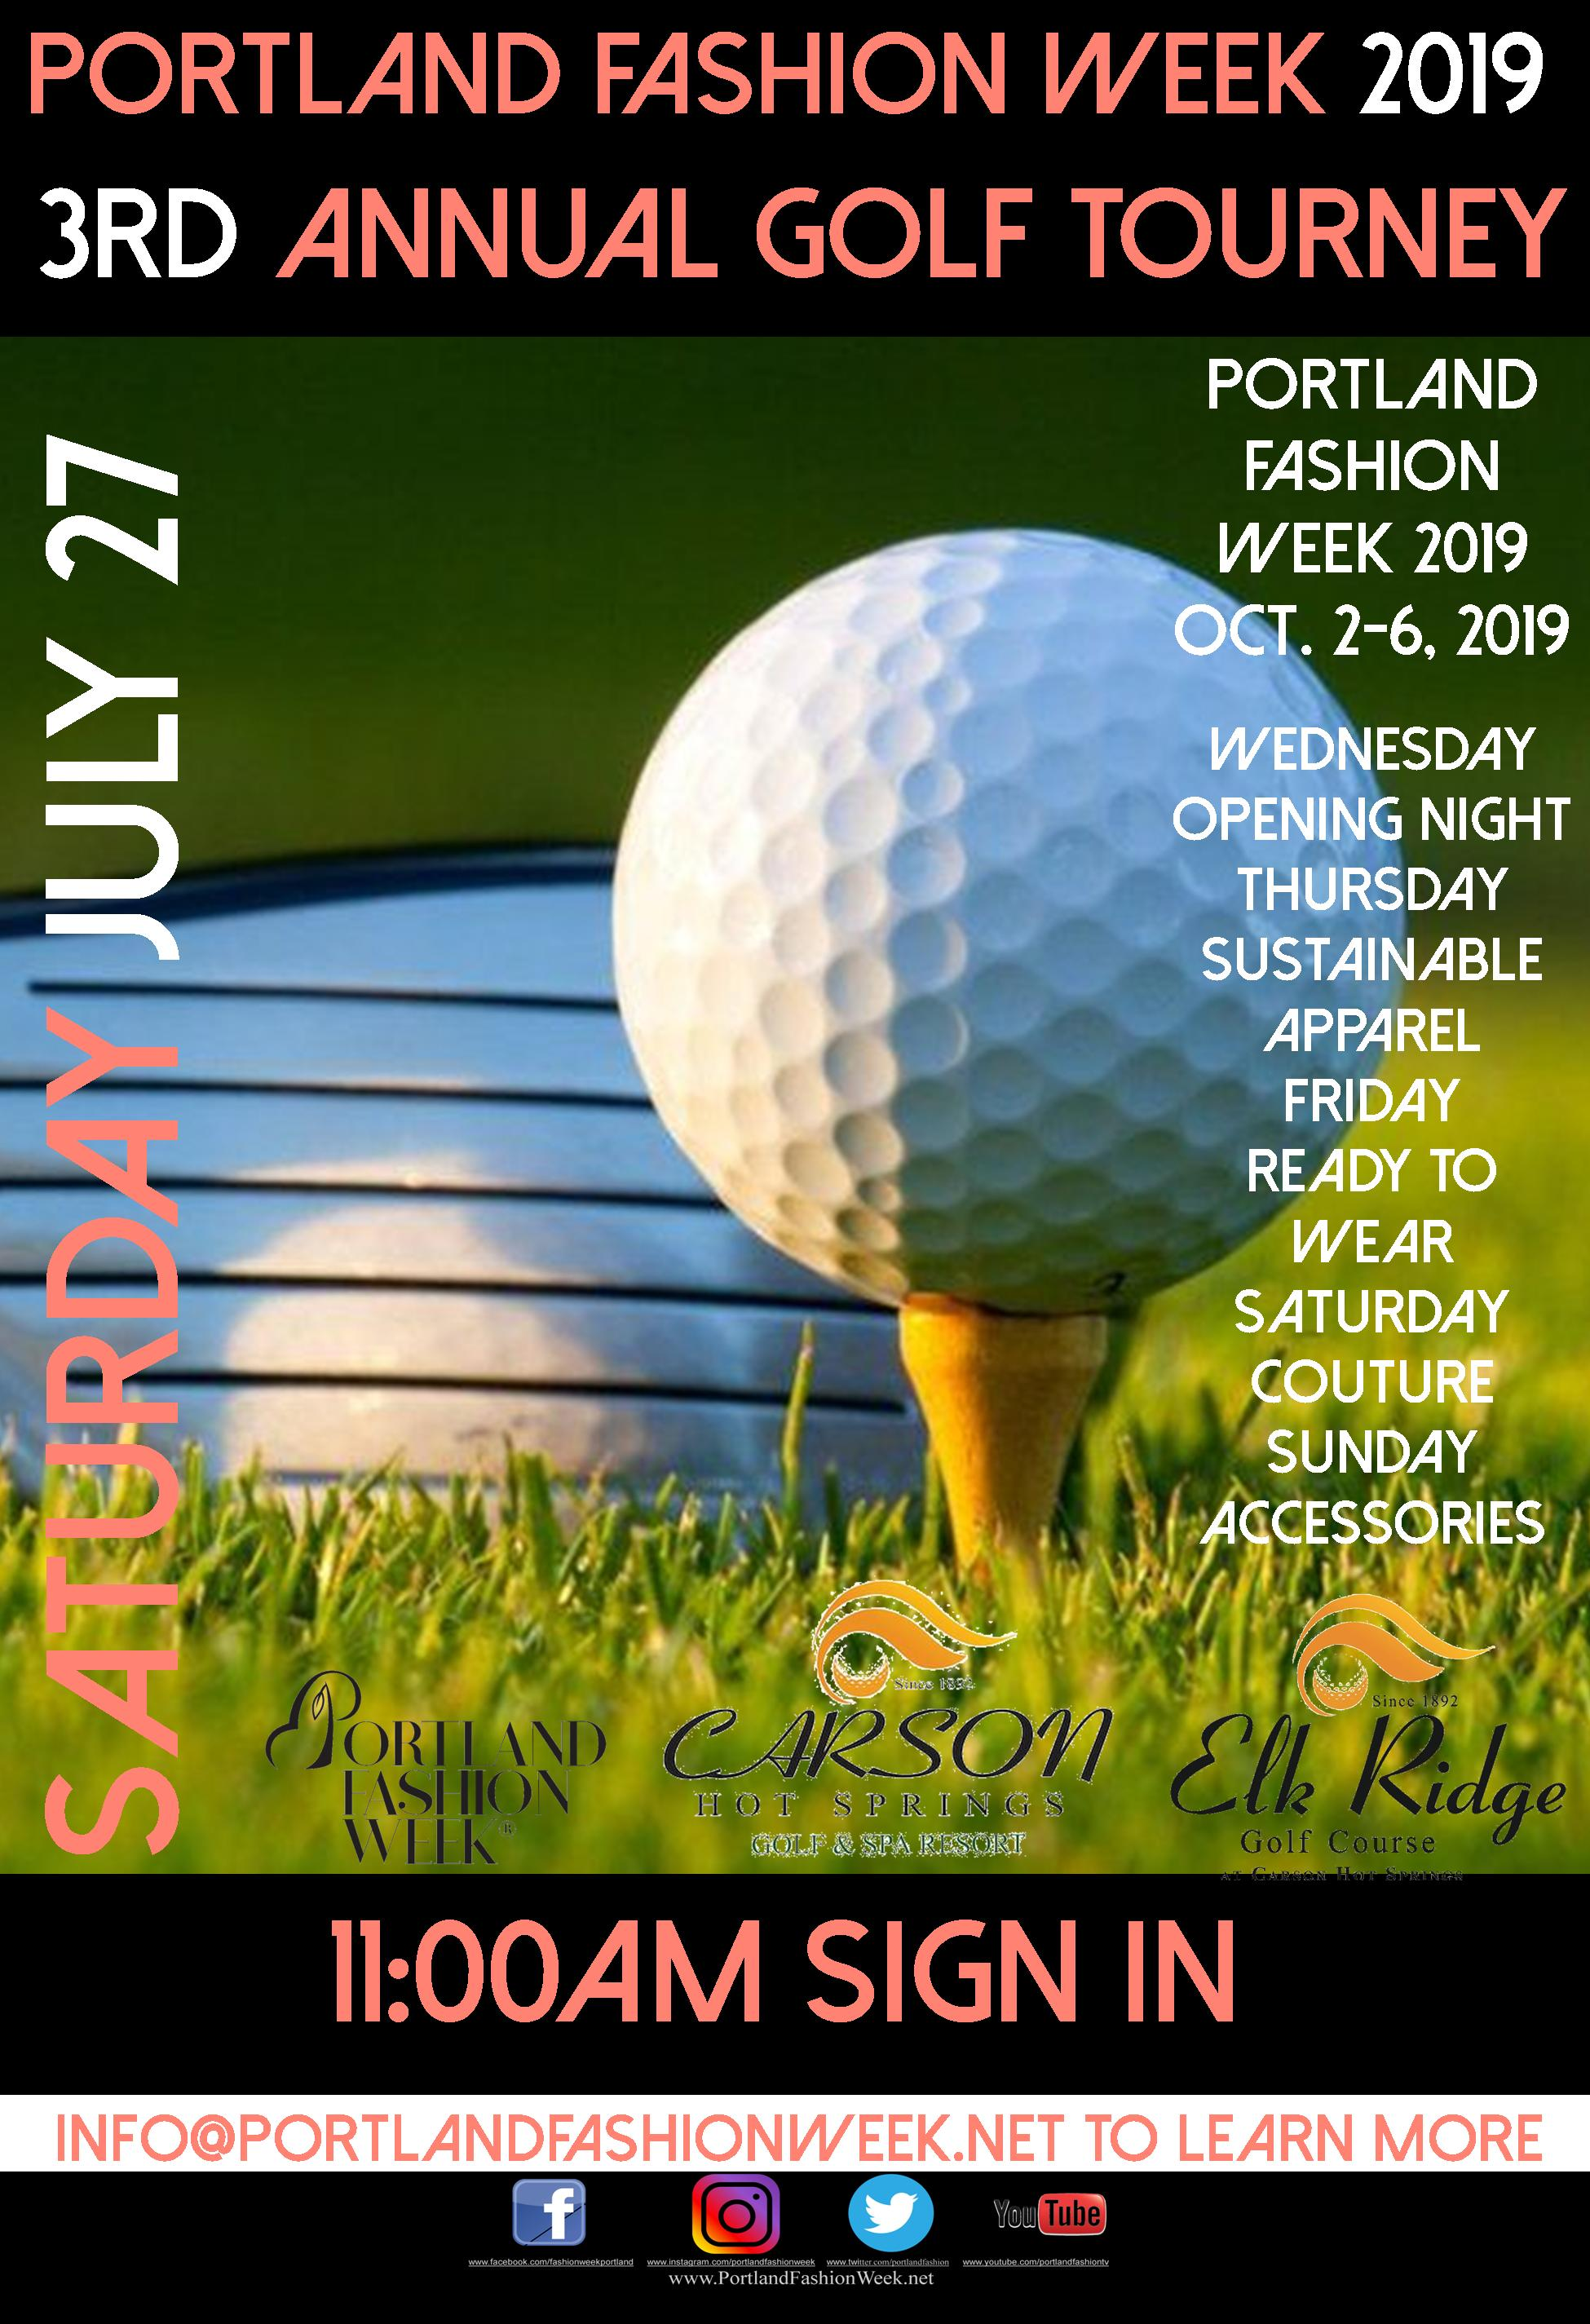 There is still time and plenty of room for your team now! - Contact Nick the golf pro at Elk Ridge to book your team at a discounted rate today! (509) 427-0127Itinerary: 10:30 am yogurt bar; live music featuring singer song writer Big Josh, and putting and driving range practicing. 11:00 am to Noon check in; noon to 1:00 pm competitions on the driving range with prizes for best drives; 1:00 shotgun start. With a $10K Bounty on the Par 5 4th Hole by Precision Services, a chic and fashionable evening and night time after party from the 9th hole featuring a ''special musical guest'' and thousands in cash and prizes beckon!Benefiting The Portland Fashion Foundation New and Expecting Mommies' Fund, a stop gap measure helping new and expecting at risk mothers meet monthly expenses.